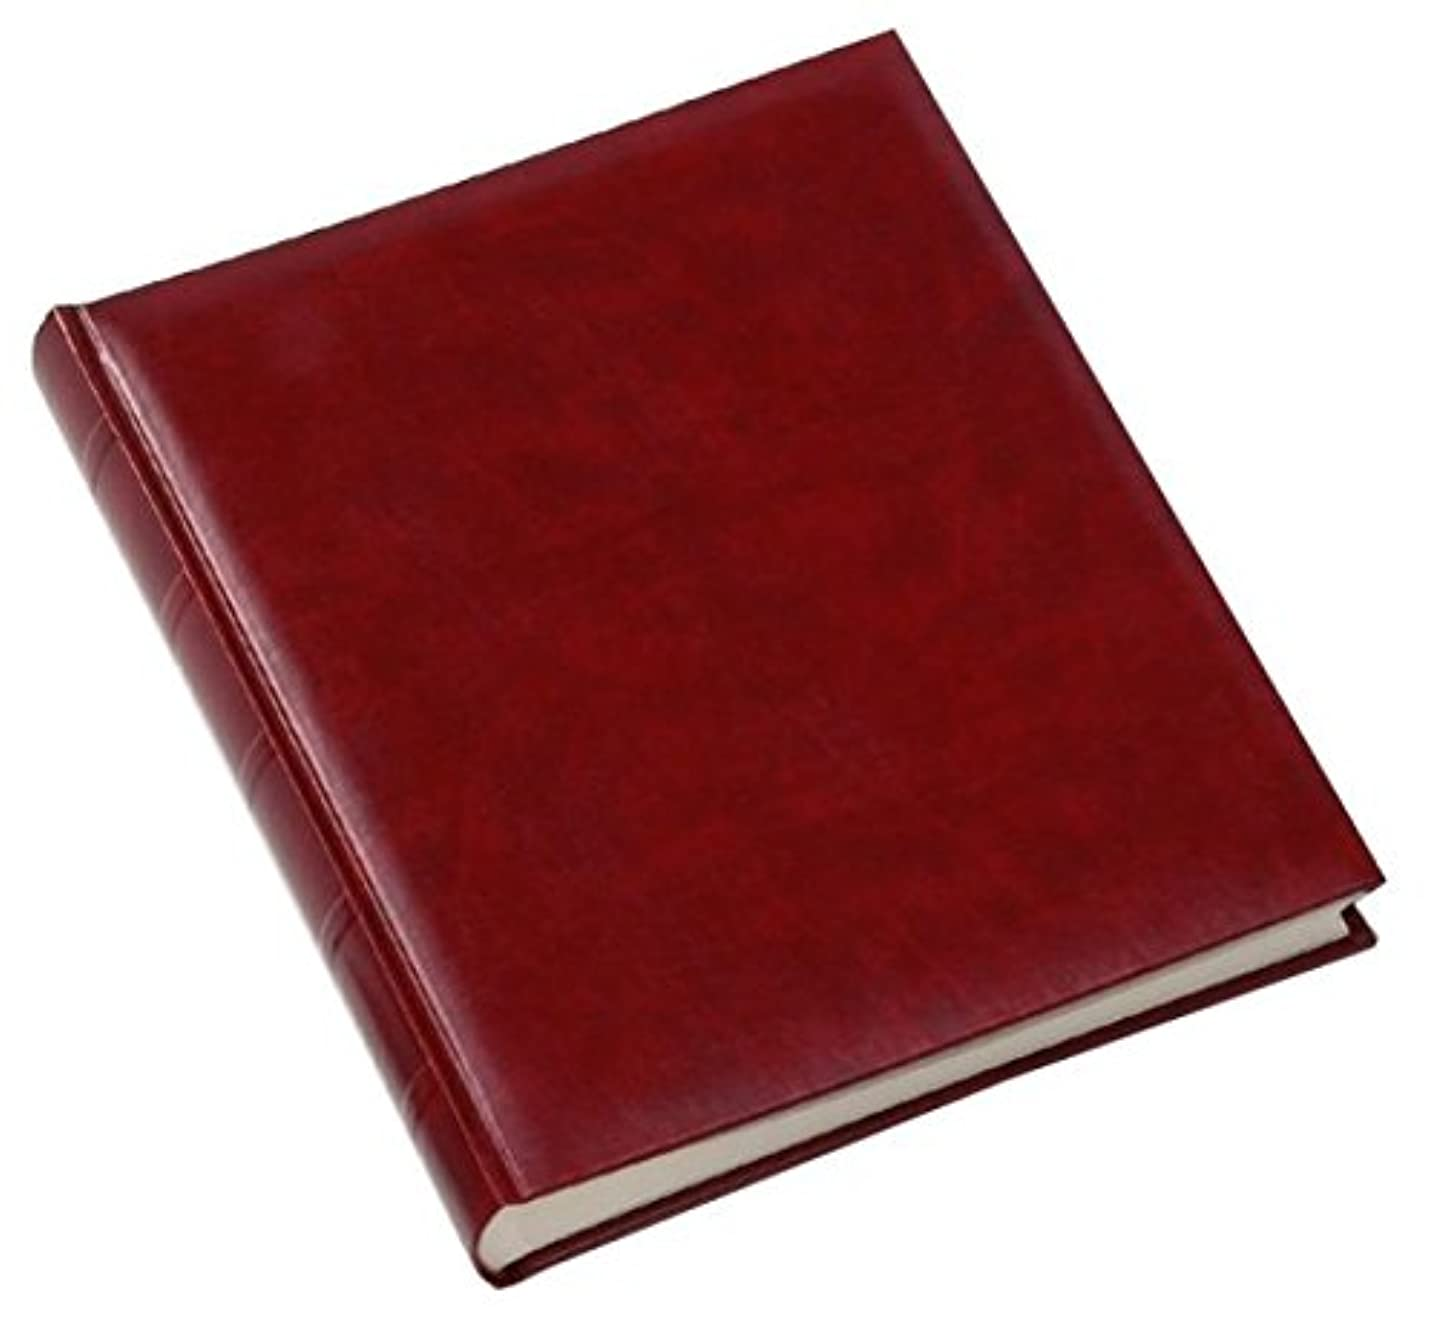 Walther design FA-373-R Classic artificial leather book bound album with ridged spine, 11.75 x 14.5 inch (30 x 37 cm), 80 white pages, red